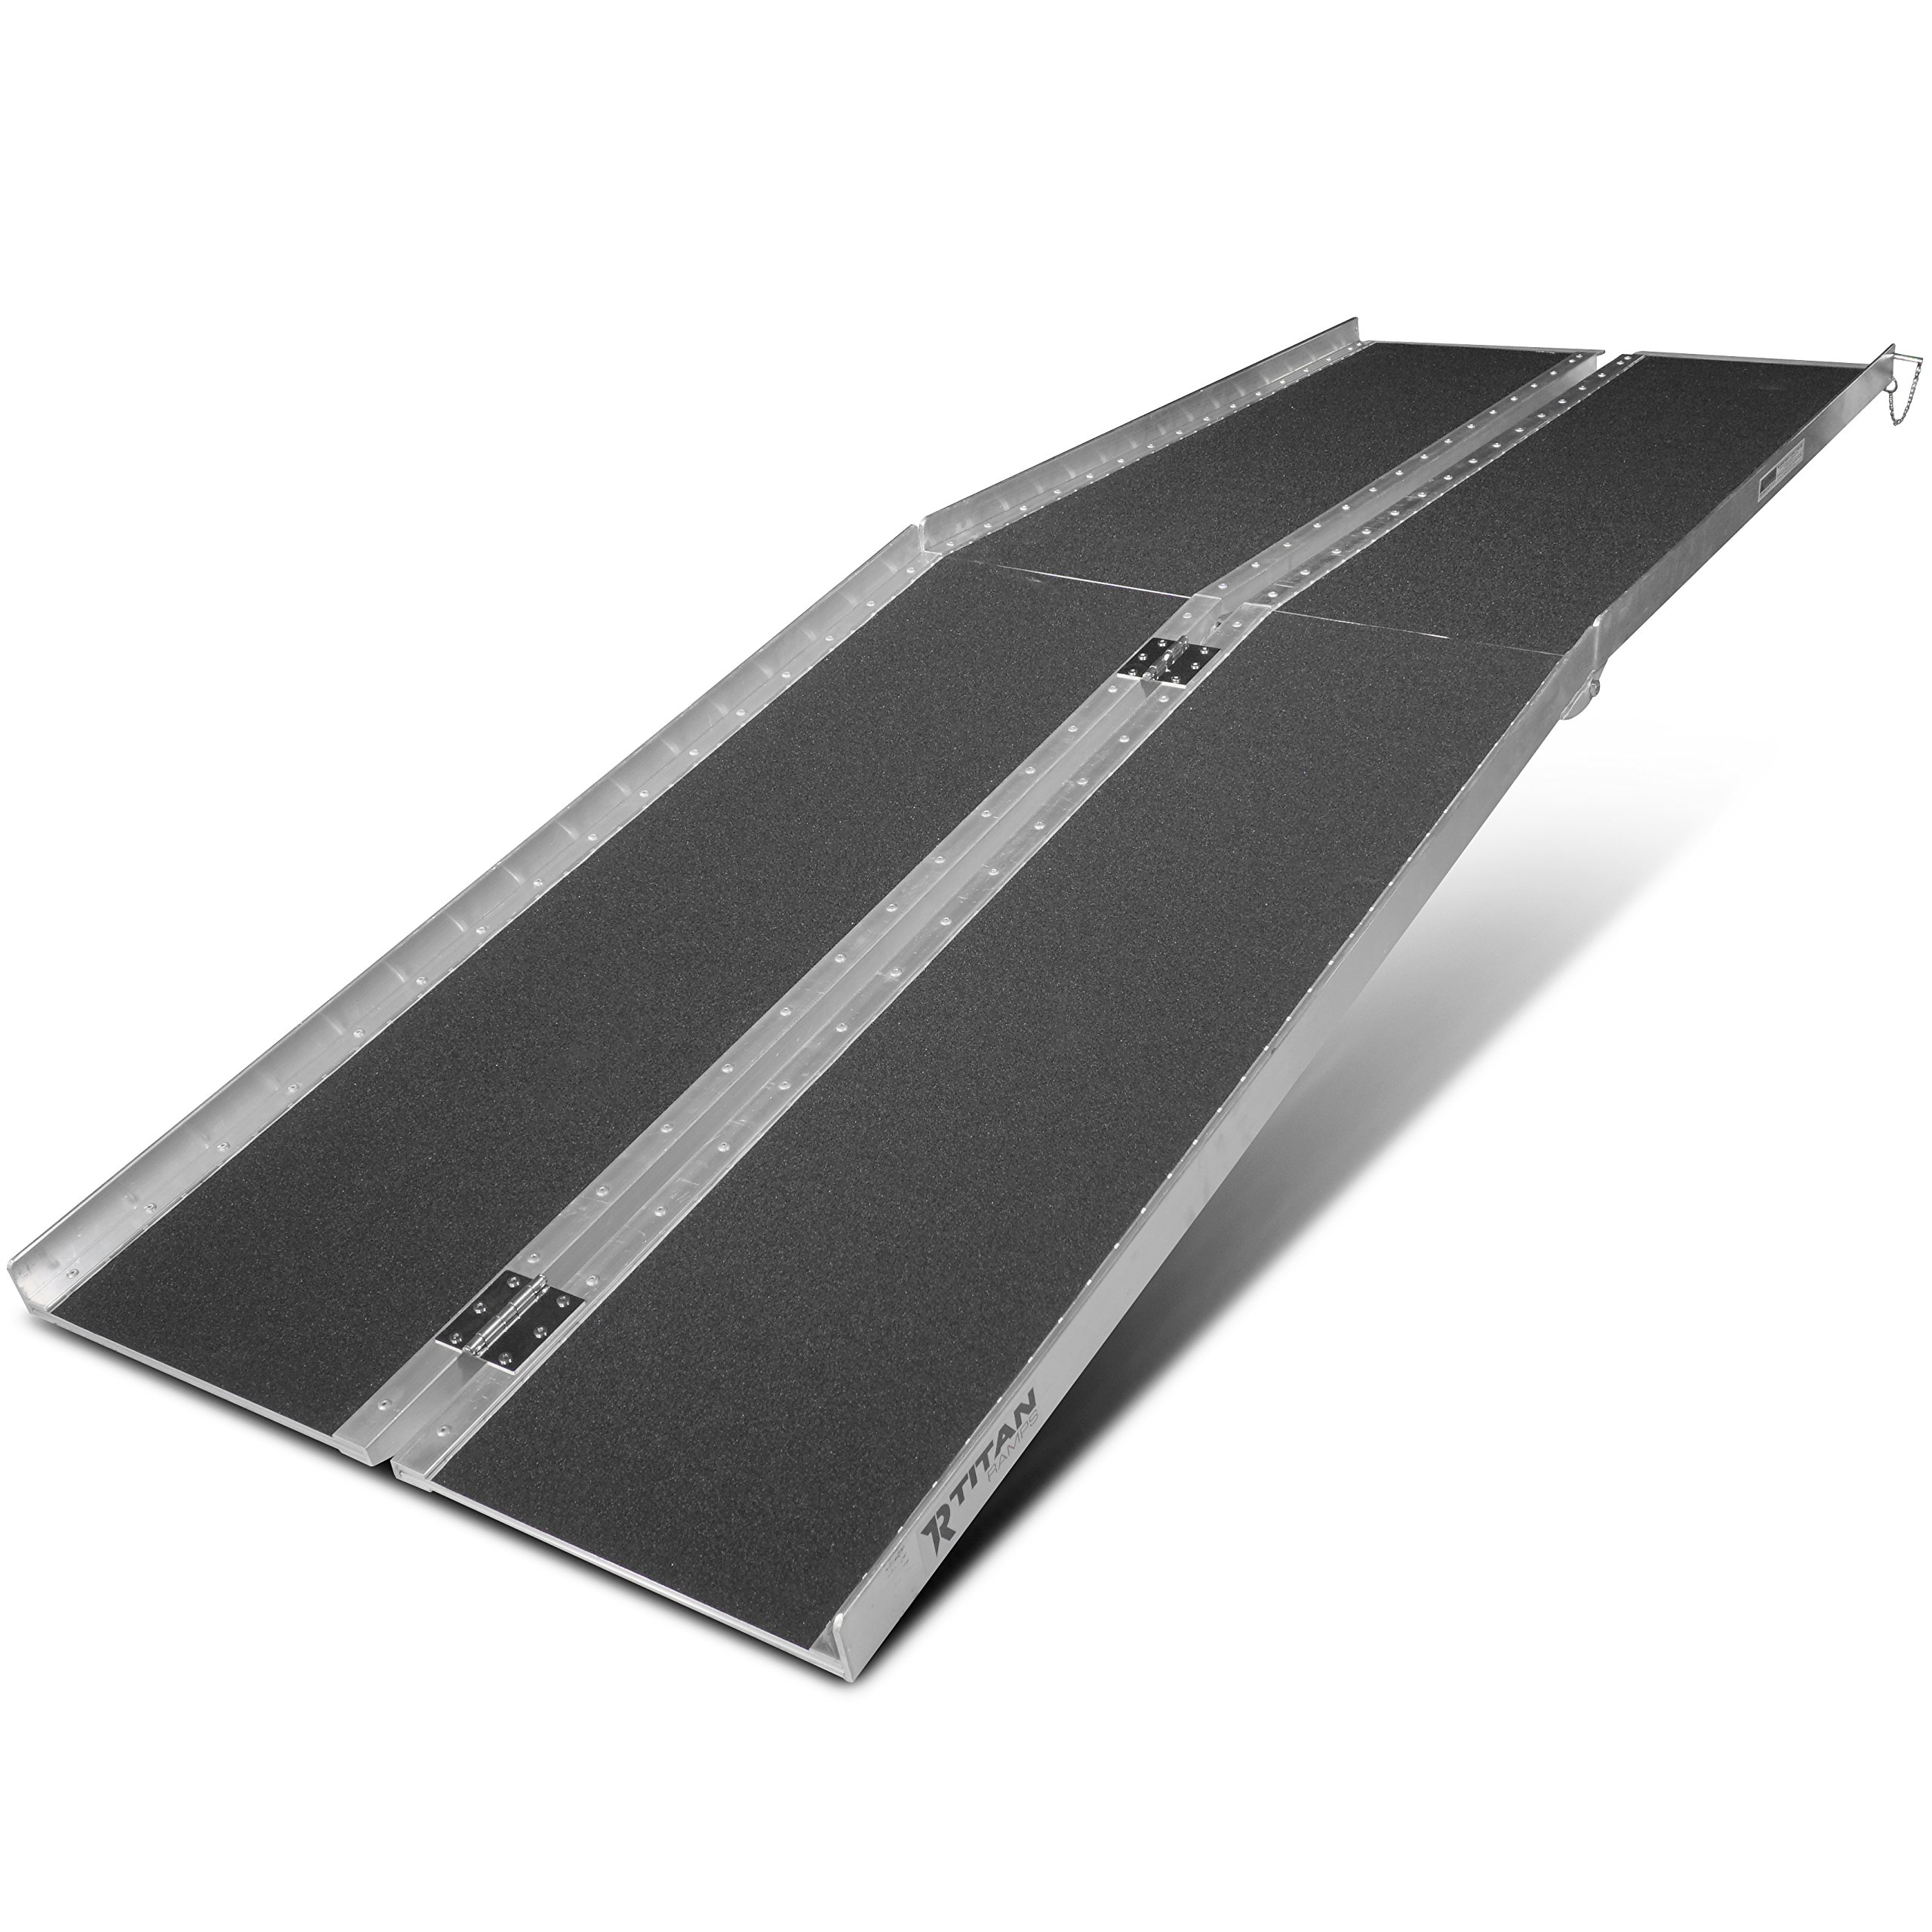 Titan Ramps 8' ft Aluminum Multifold Wheelchair Scooter Mobility Ramp portable 96'' (MF8) by Titan Ramps